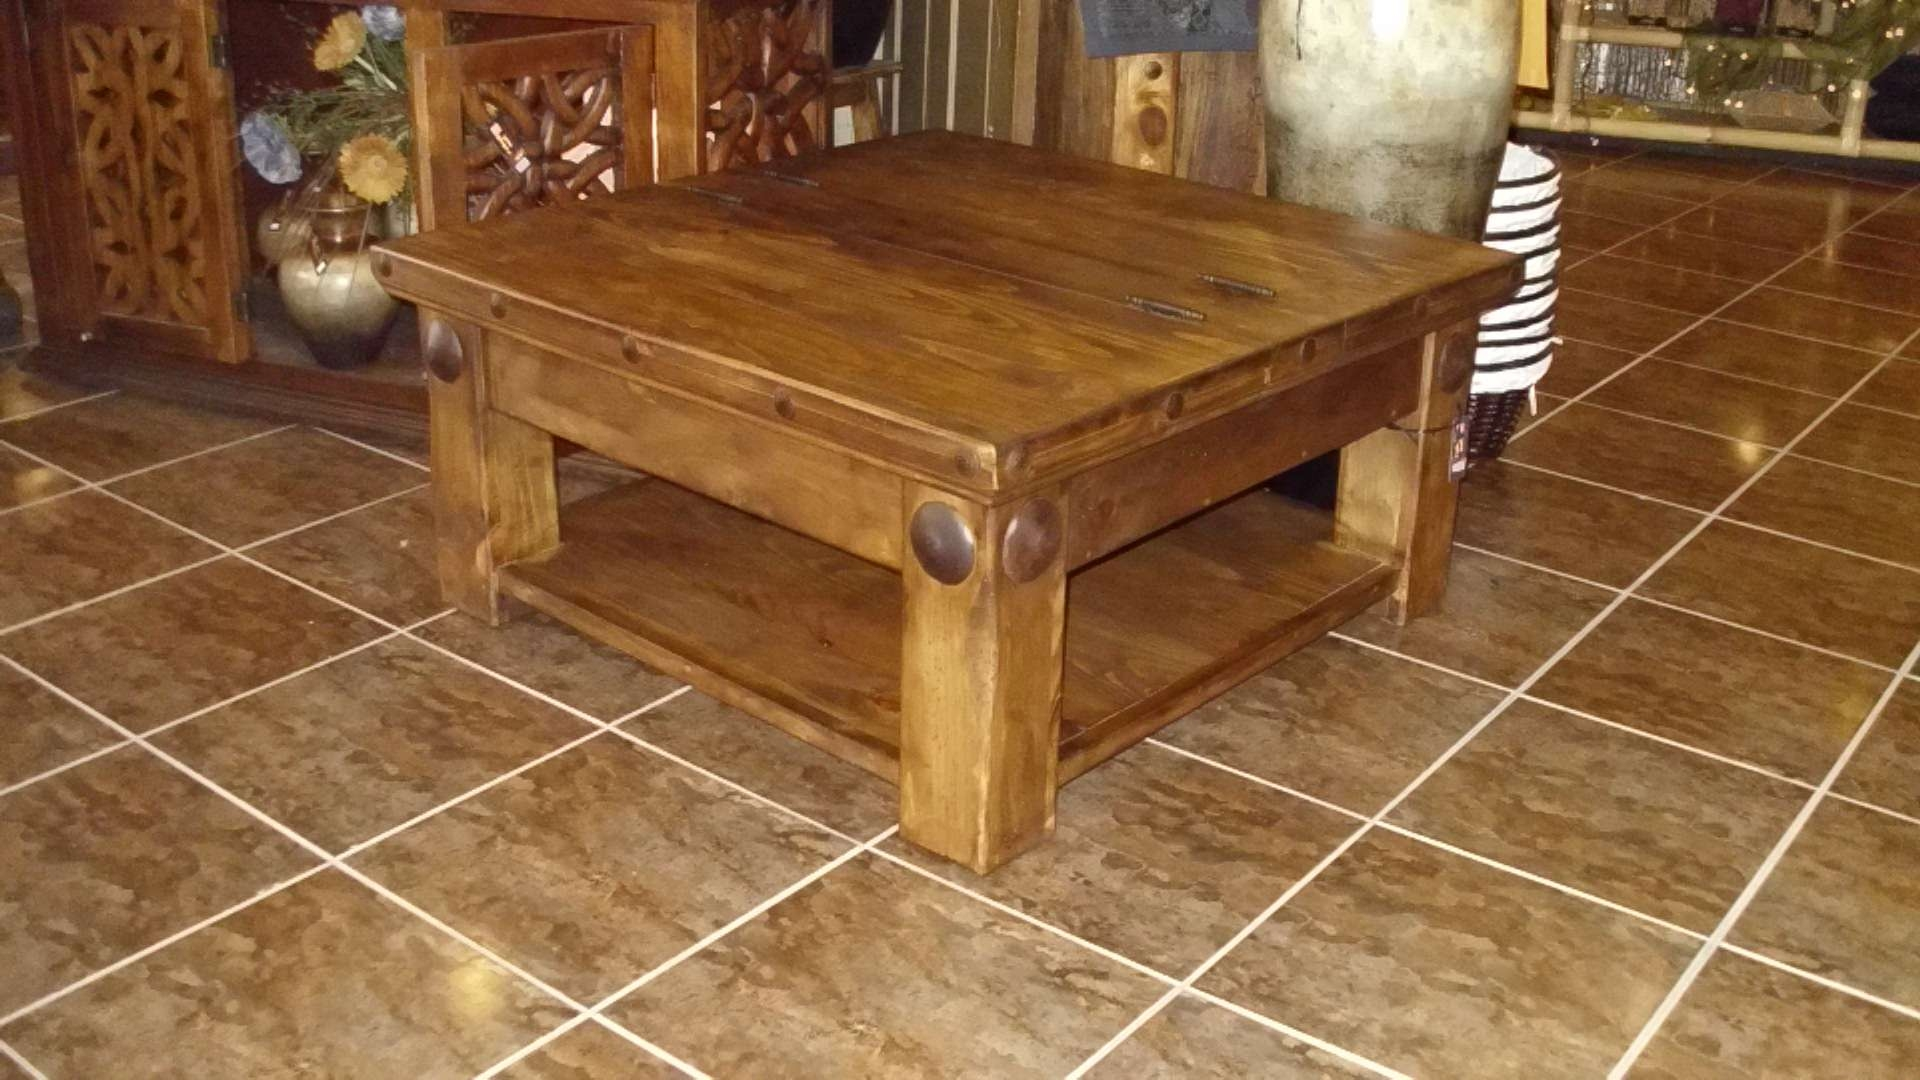 Trendy Square Pine Coffee Tables Intended For Coffee Table : Coffee Table Pine With Shelf Sets Legs 42pine (View 8 of 20)